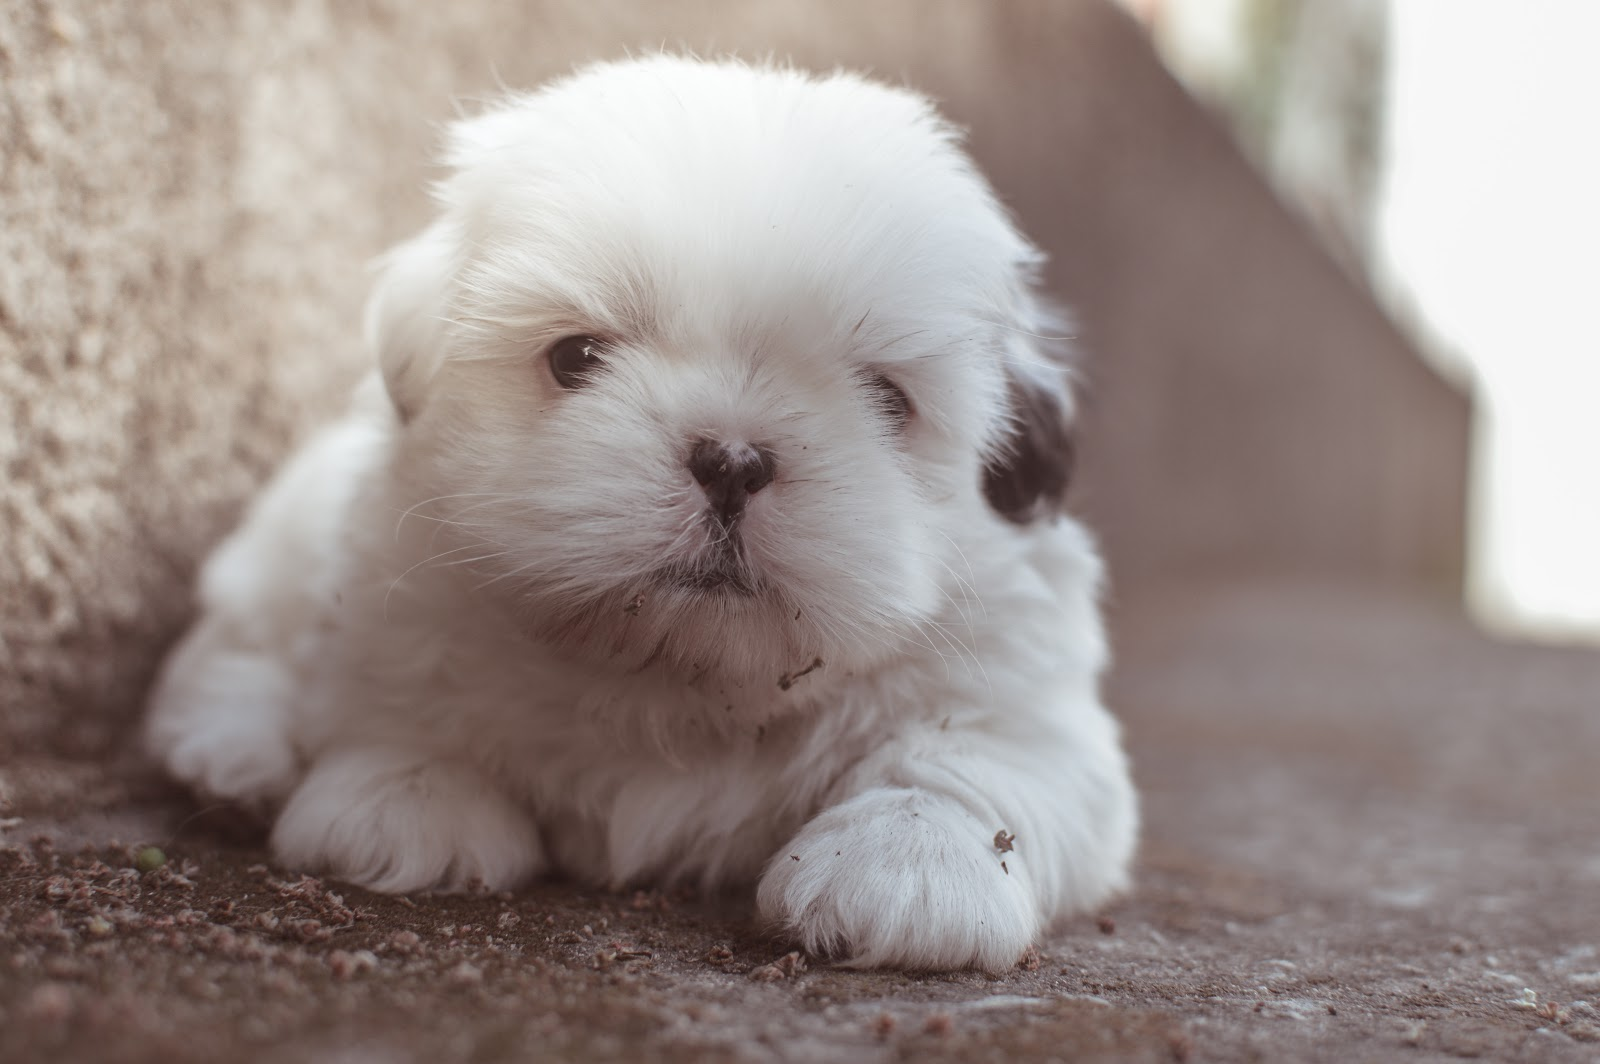 close-up-photography-of-white-long-coated-puppy-dog-pictures